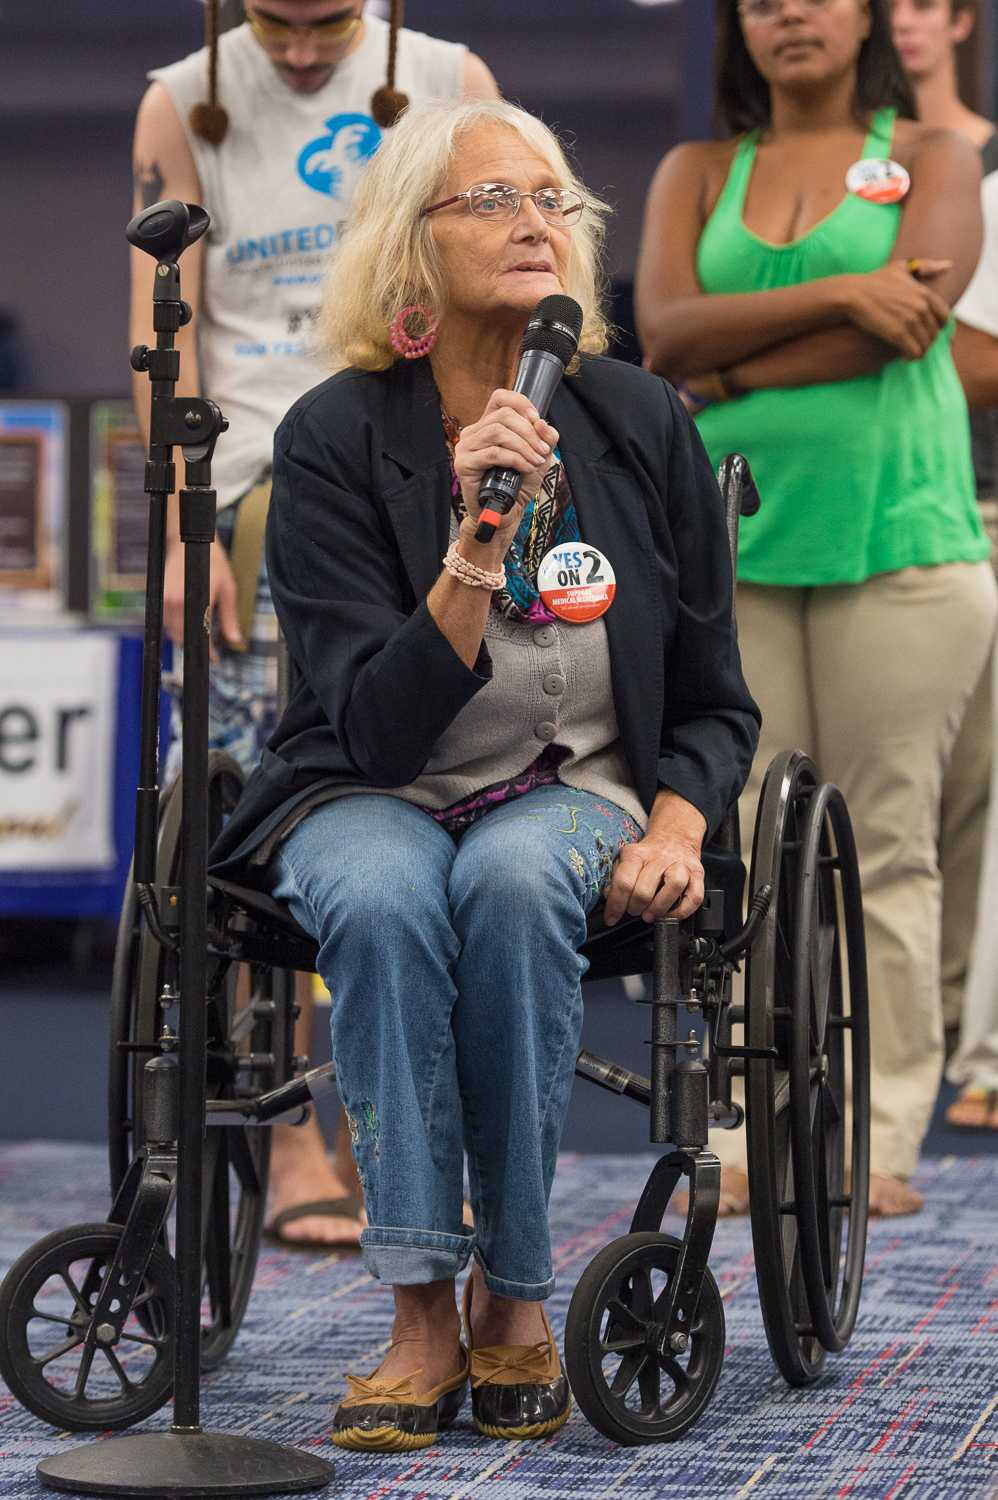 """Beth Ann Krug was diagnosed with Parkinson's disease in 2009, and has been an advocate for Parkinsons since then. She said that one of her concerns with Amendment 2 is how it would affect people who have already been incarcerated for the buying or selling of marijuana. """"There's been a time where I had to choose between going to the grocery store and picking up my medication -- one of which, over the counter, is $888 a month,"""" she said. Krug spoke of her time in Colorado this summer, stating, """"While I was there I tried it, it was called Trinity. It took away my tremors, and for a couple of hours I felt normal again."""""""